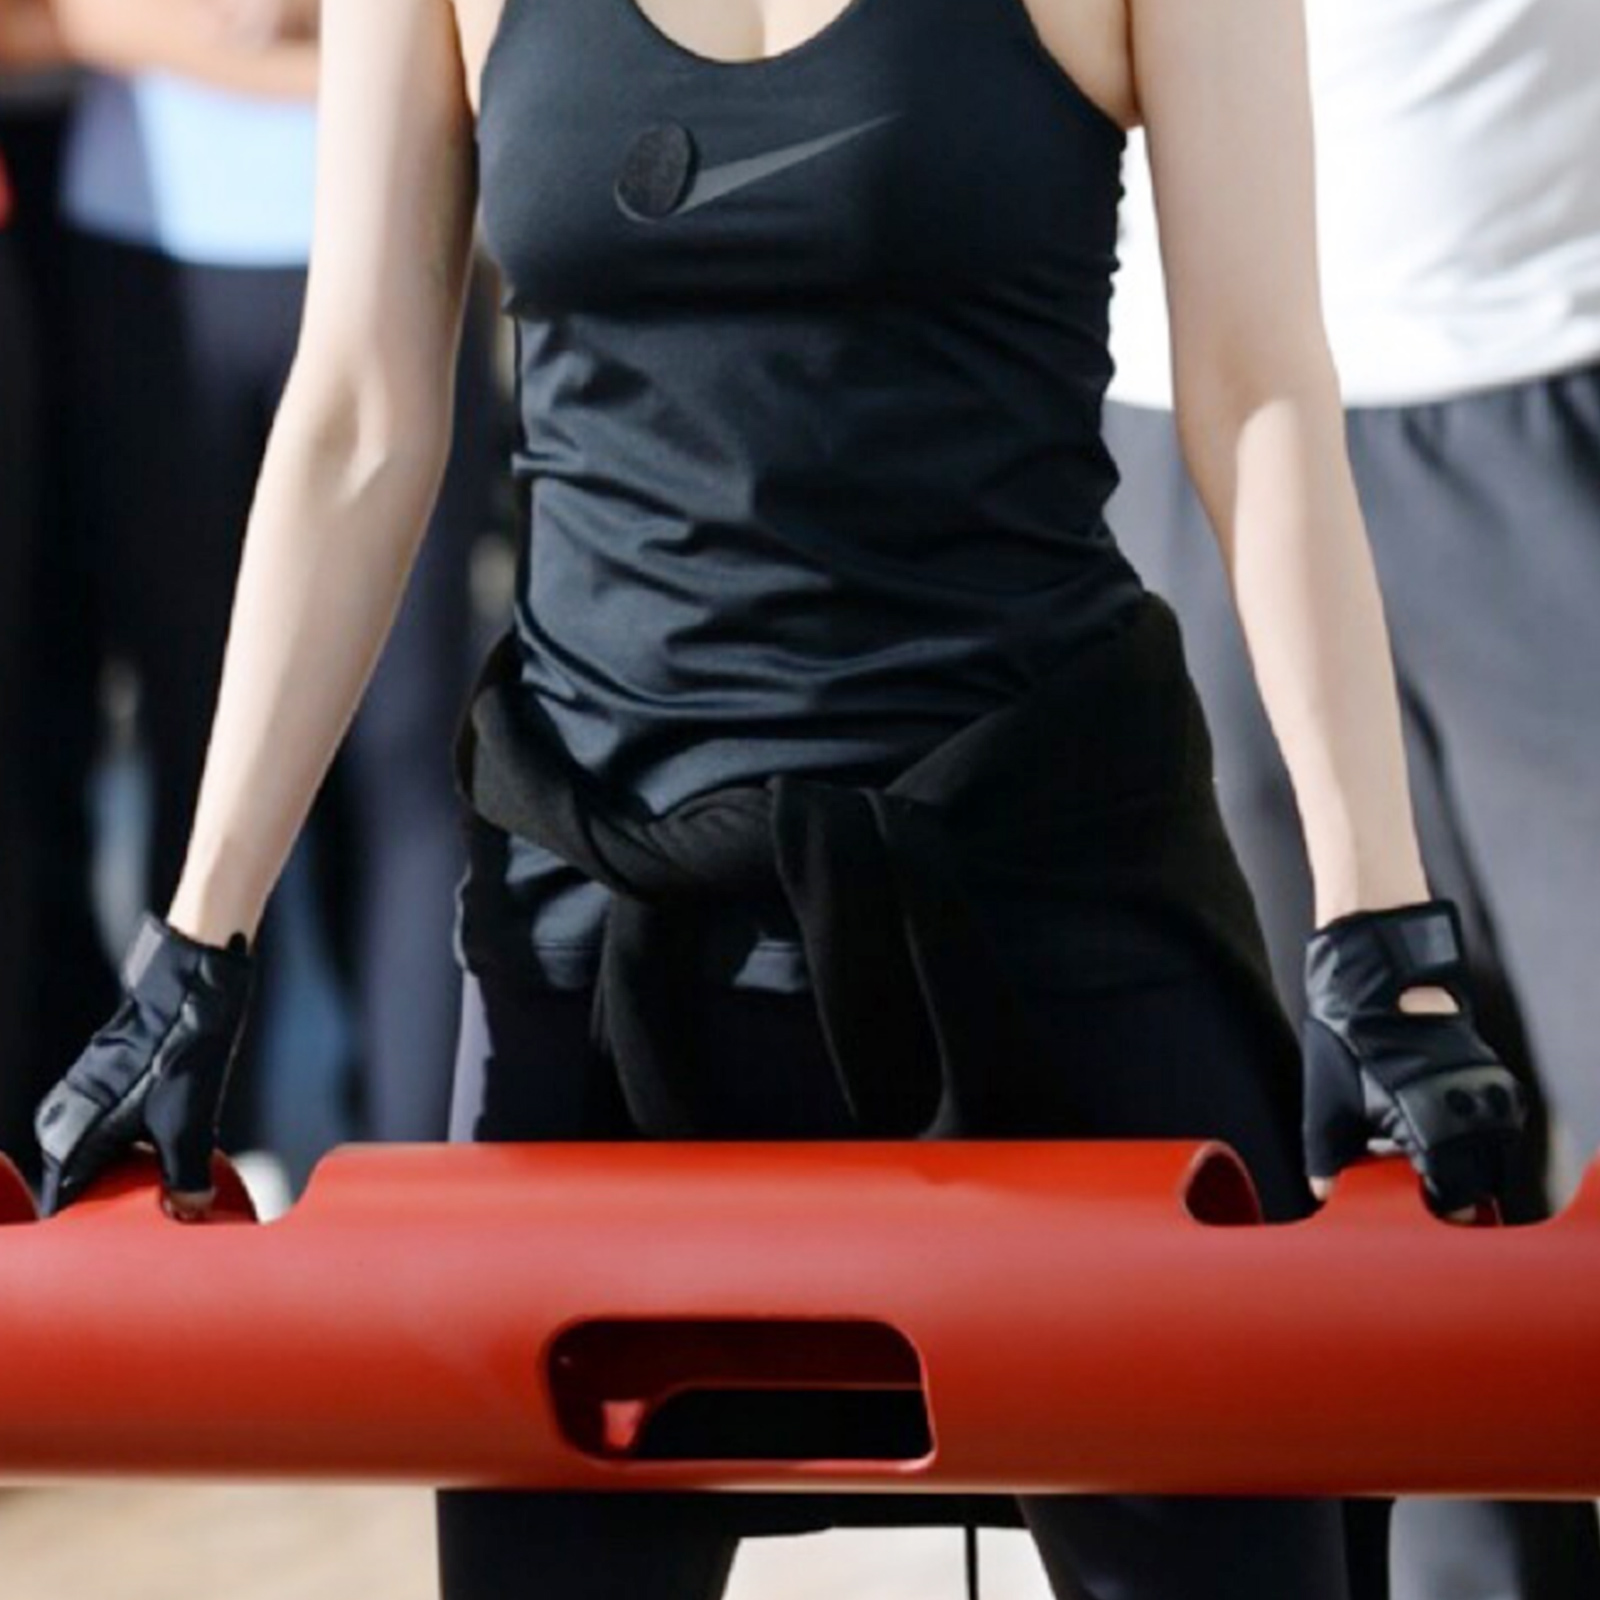 Vipr-Fitpro-Fitness-Tube-Loaded-Movement-Training-weightlifting-4-6-8-10-12-Kg thumbnail 72